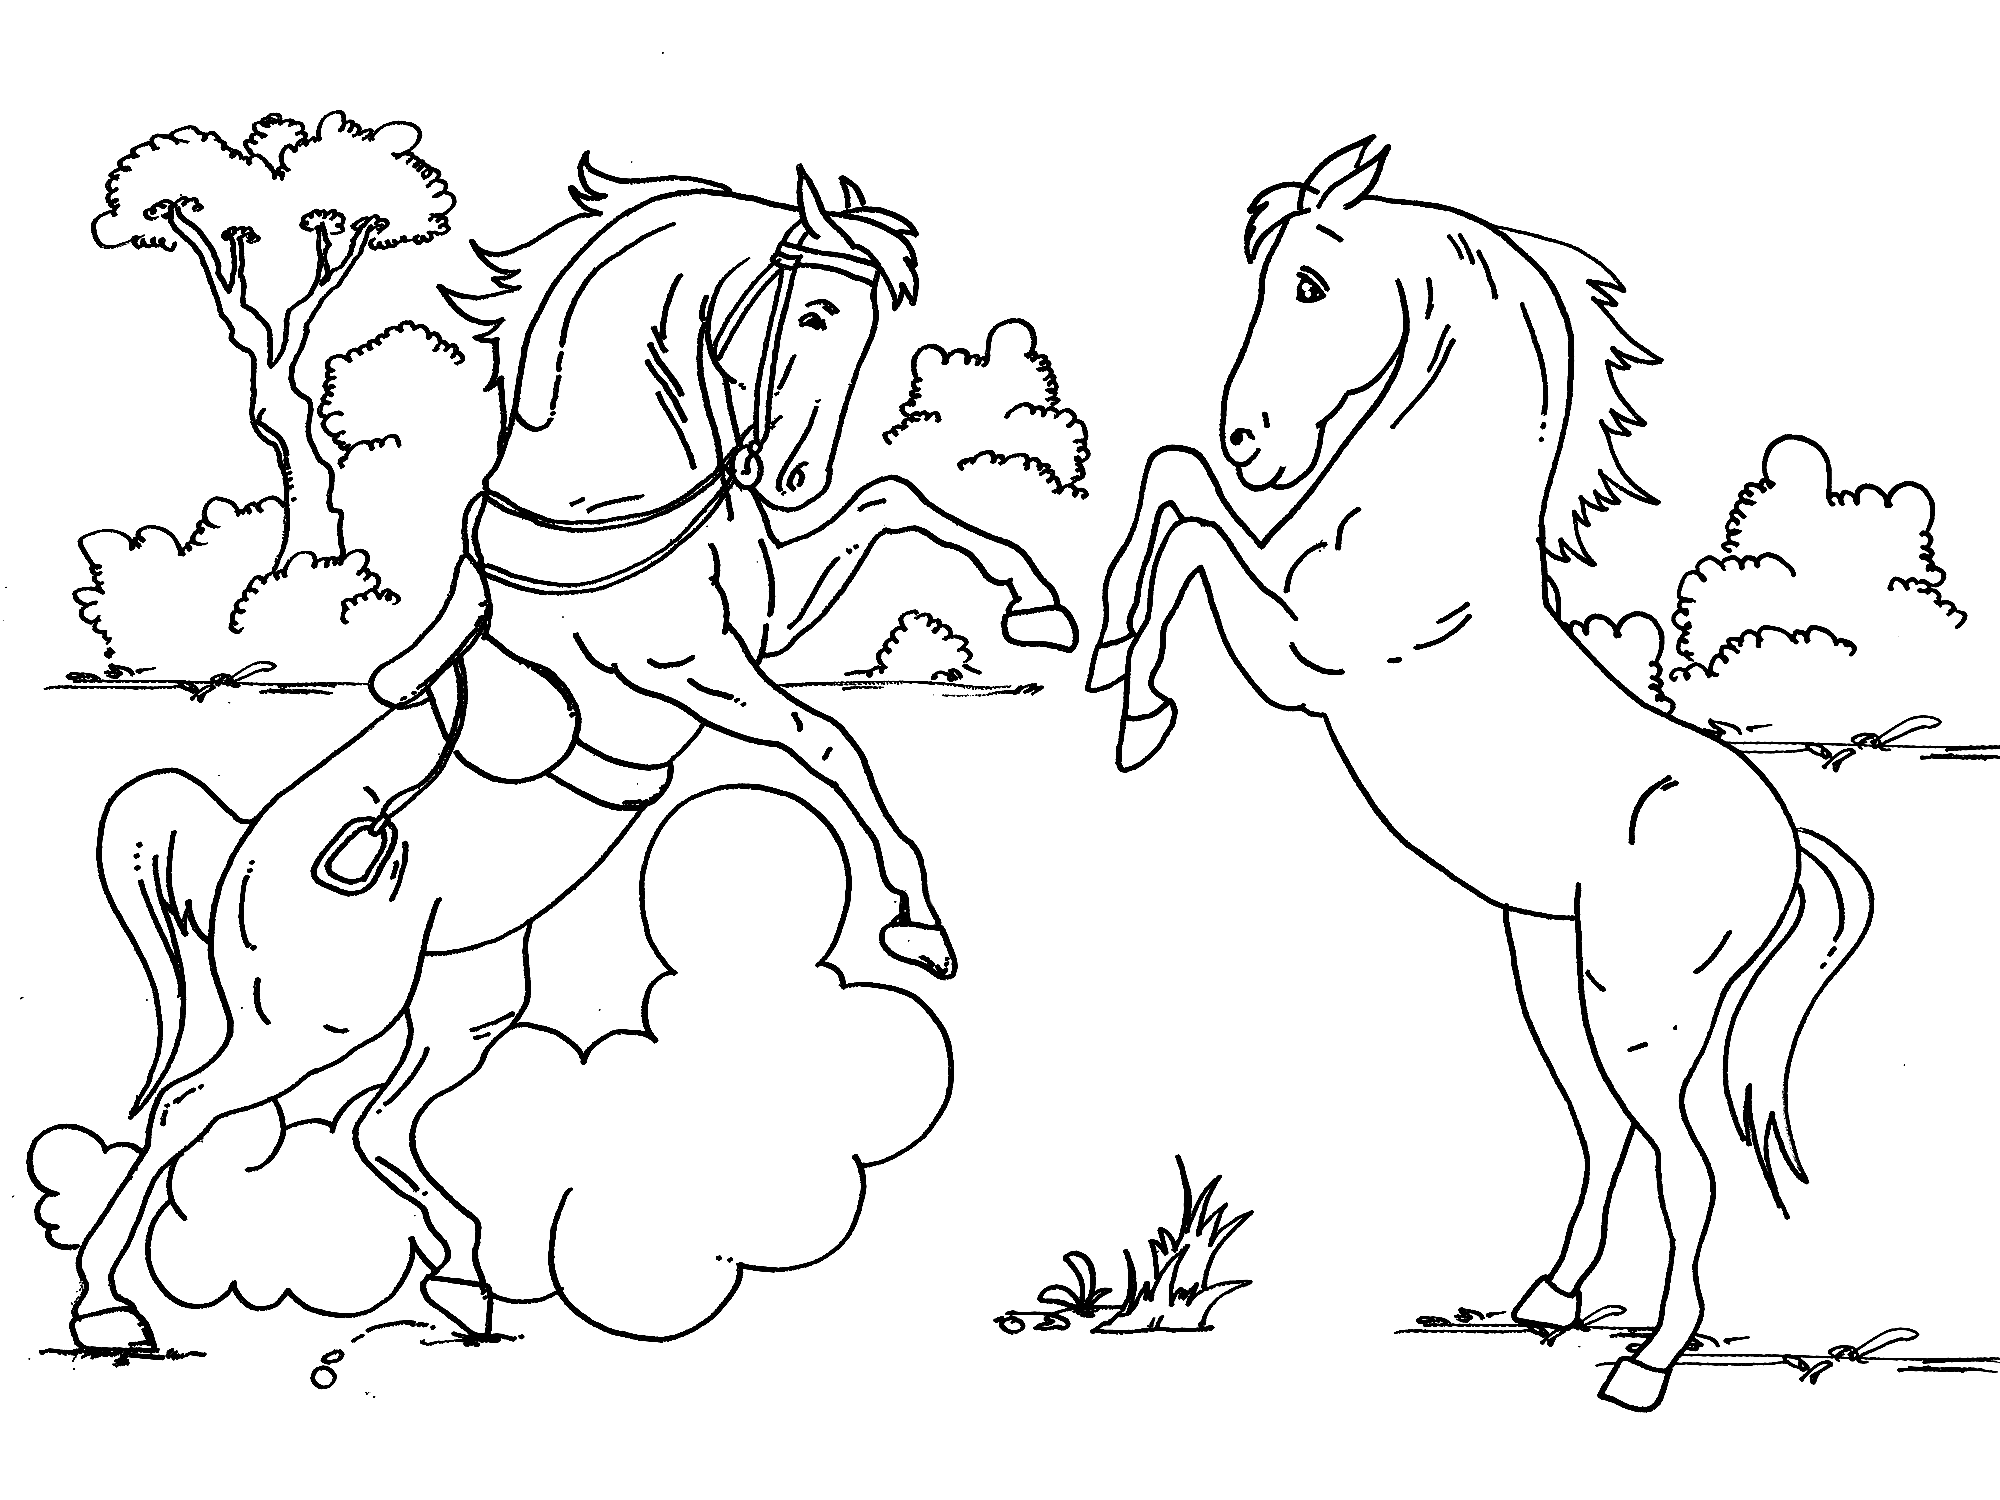 Horses Free Coloring Pages 2014 Coloring Pages Horse Coloring Pages Horse Coloring [ 1500 x 2000 Pixel ]